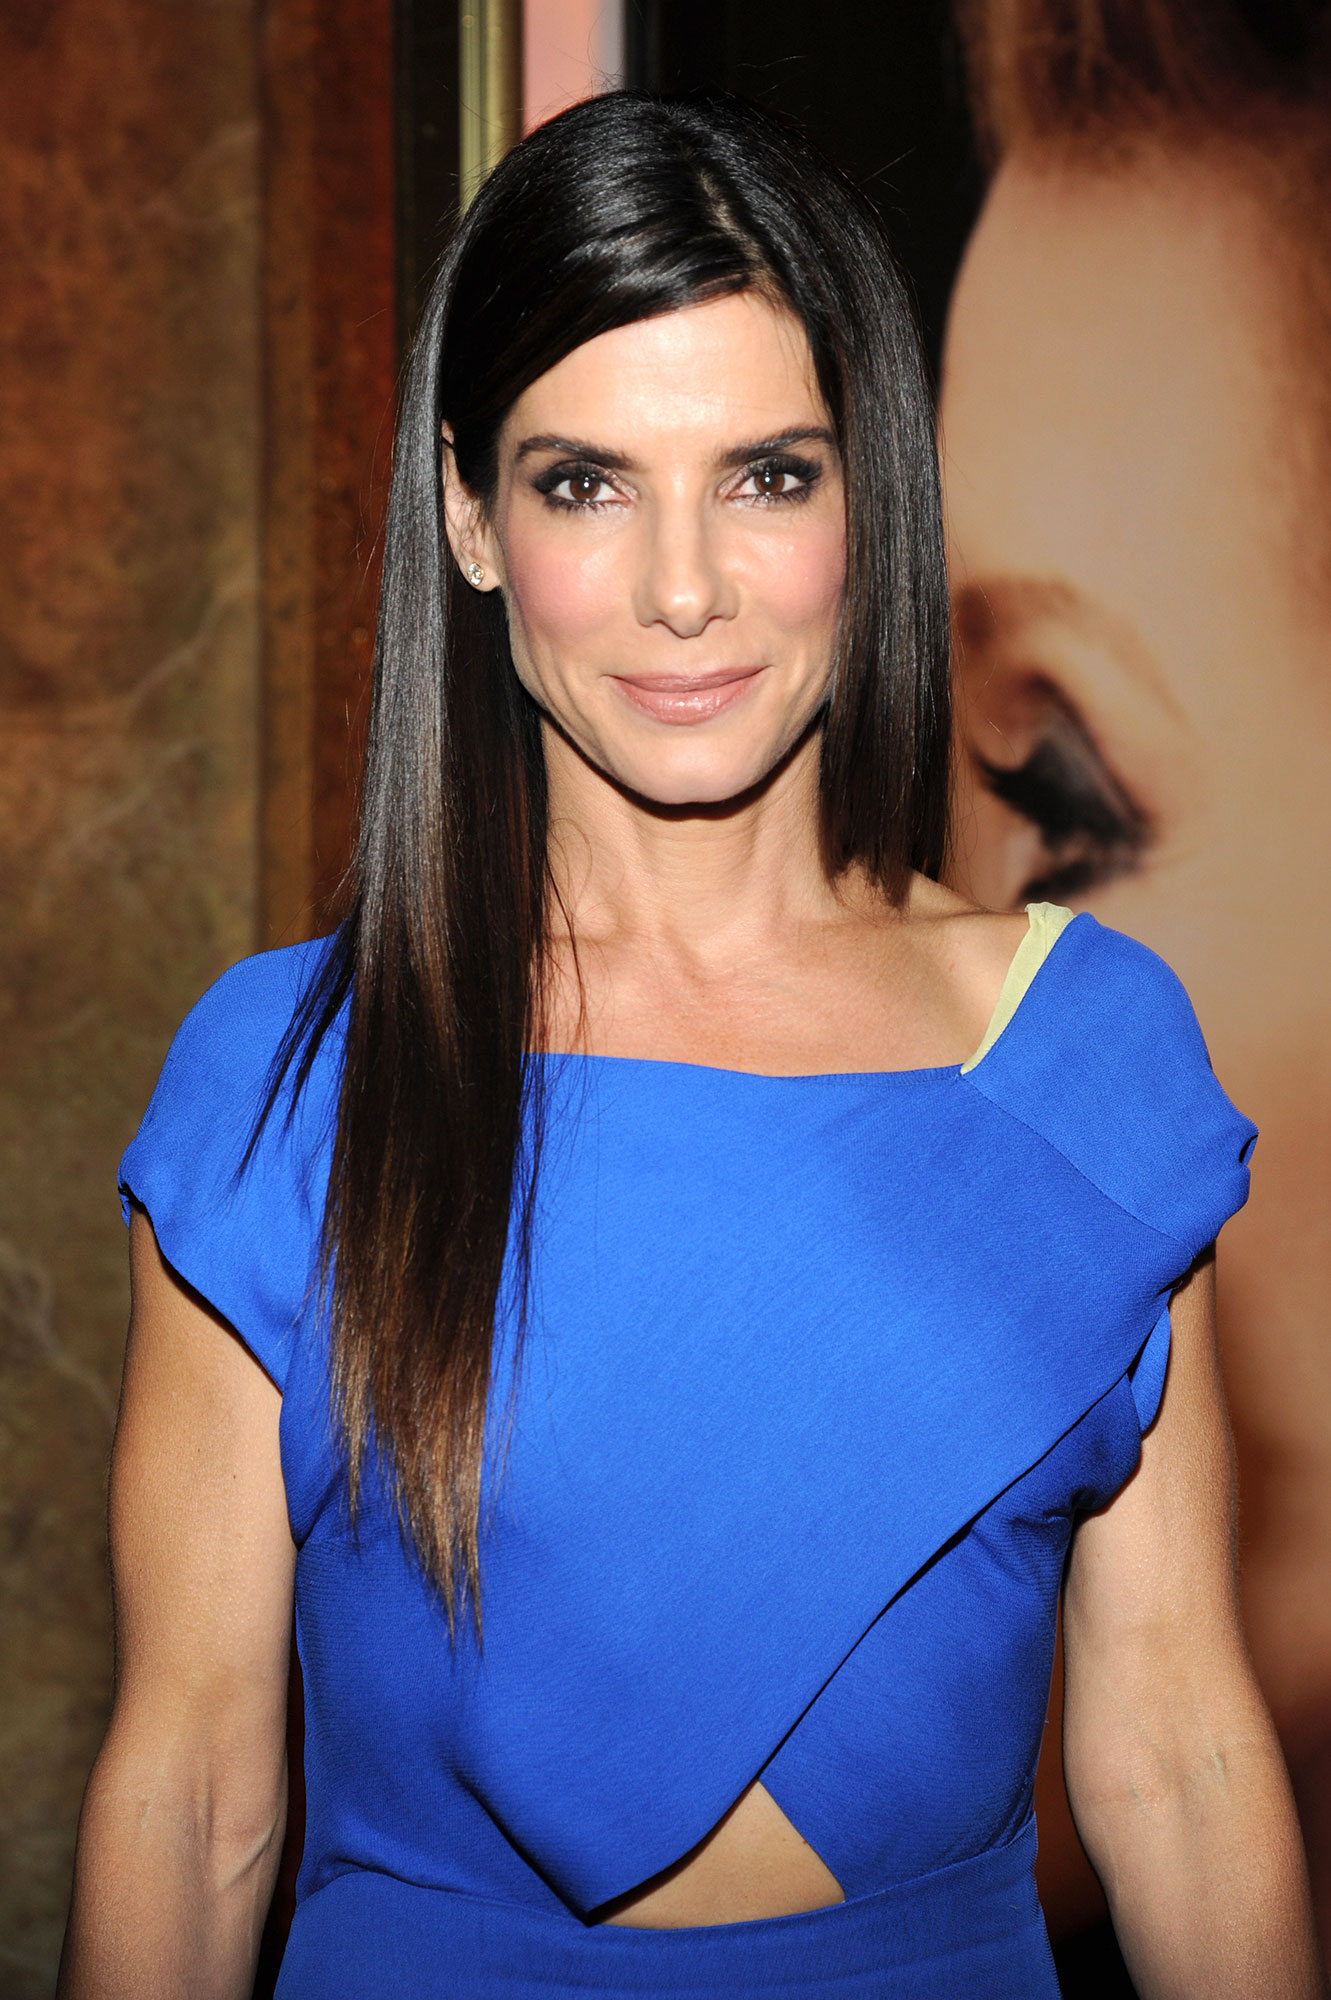 Sandra Bullock - In December 2015, after she was spotted carrying a baby into a hospital two months beforehand, the Ocean's 8 actress revealed that she had adopted a second child : daughter Laila.